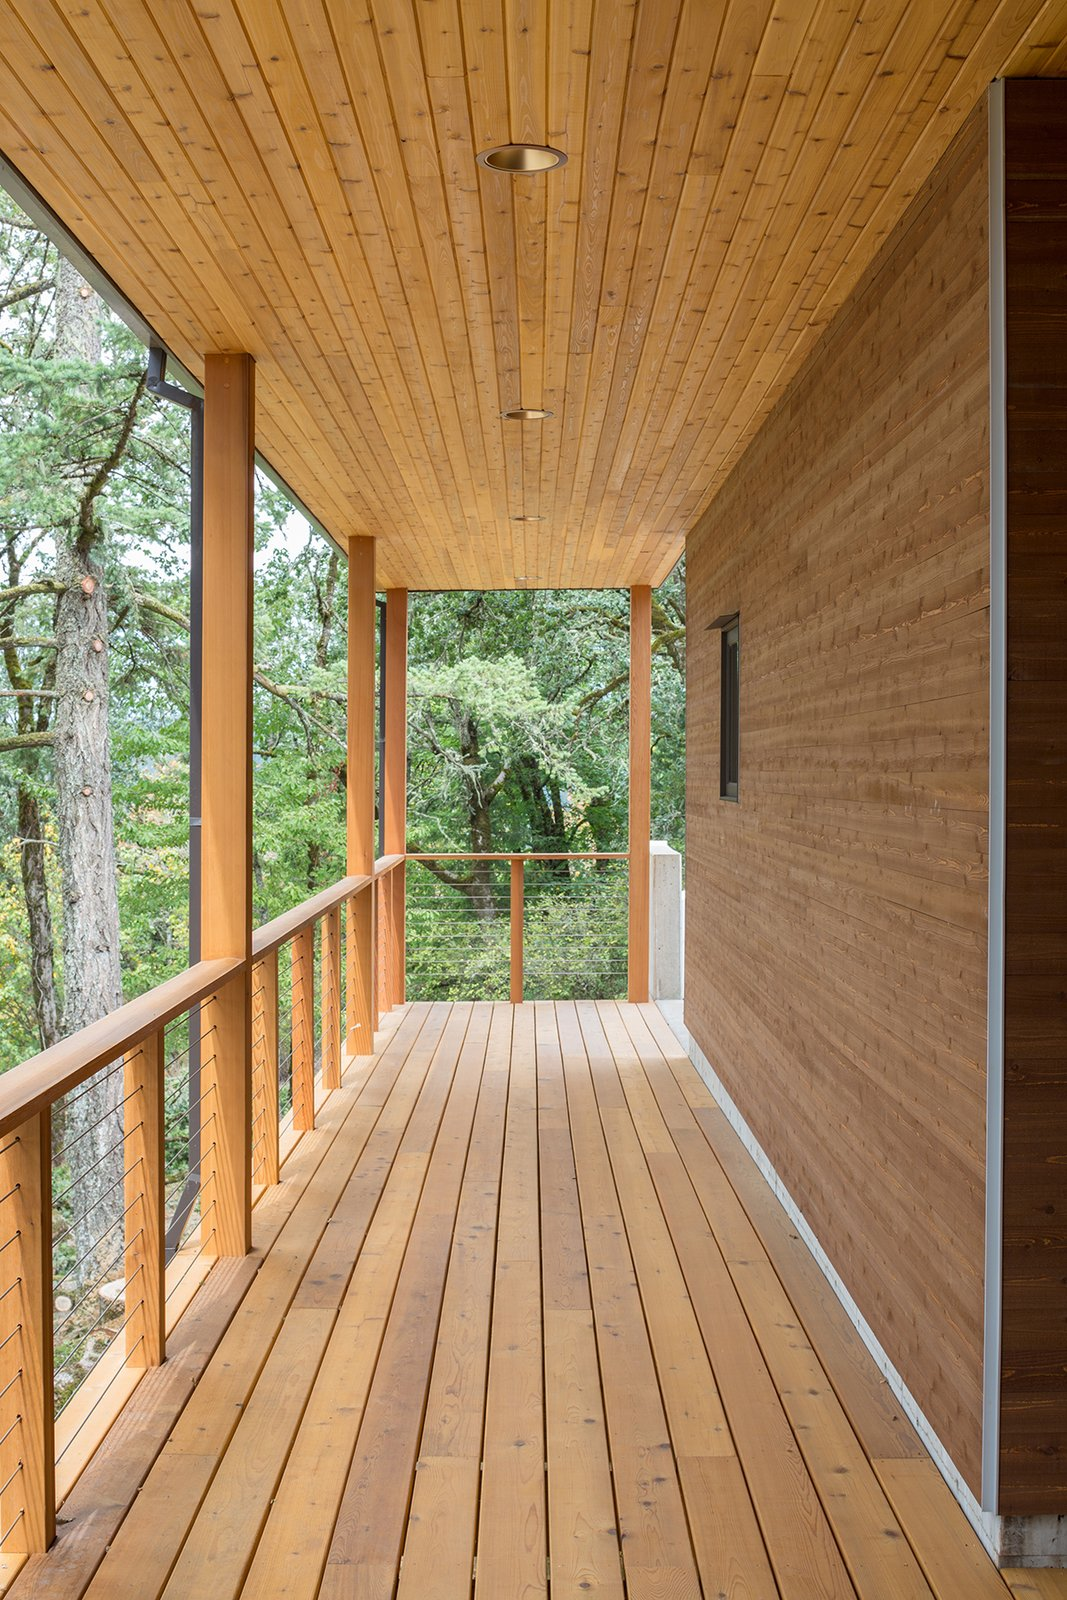 The covered walkway is enveloped by cedar planks and lush oak canopies.